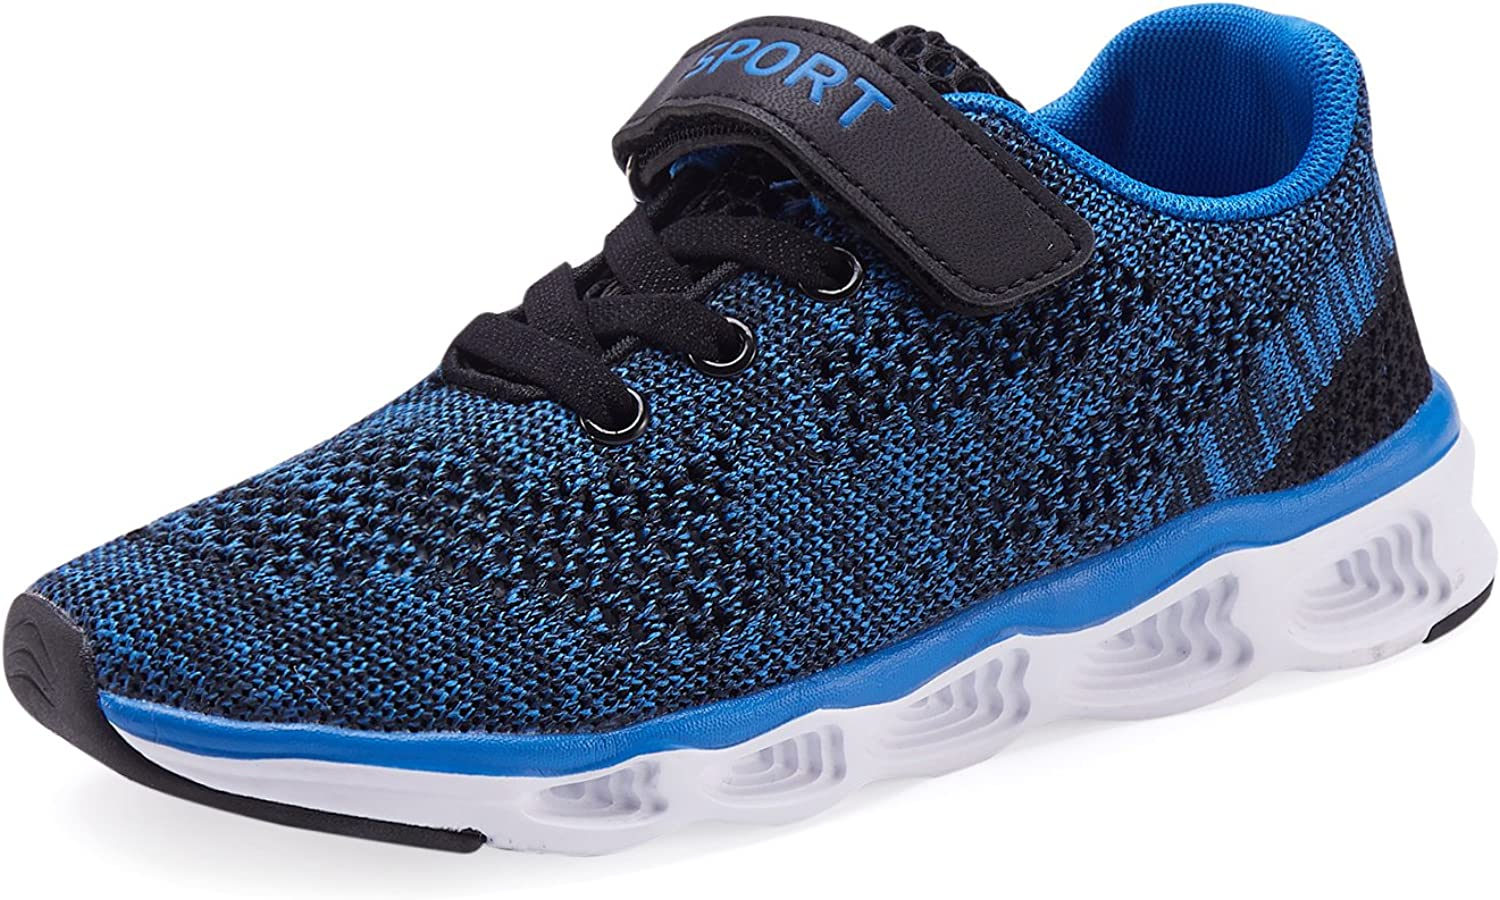 Casbeam Toddler Kid's Lightweight Sneakers Boys and Girls Cute Casual Running Shoes